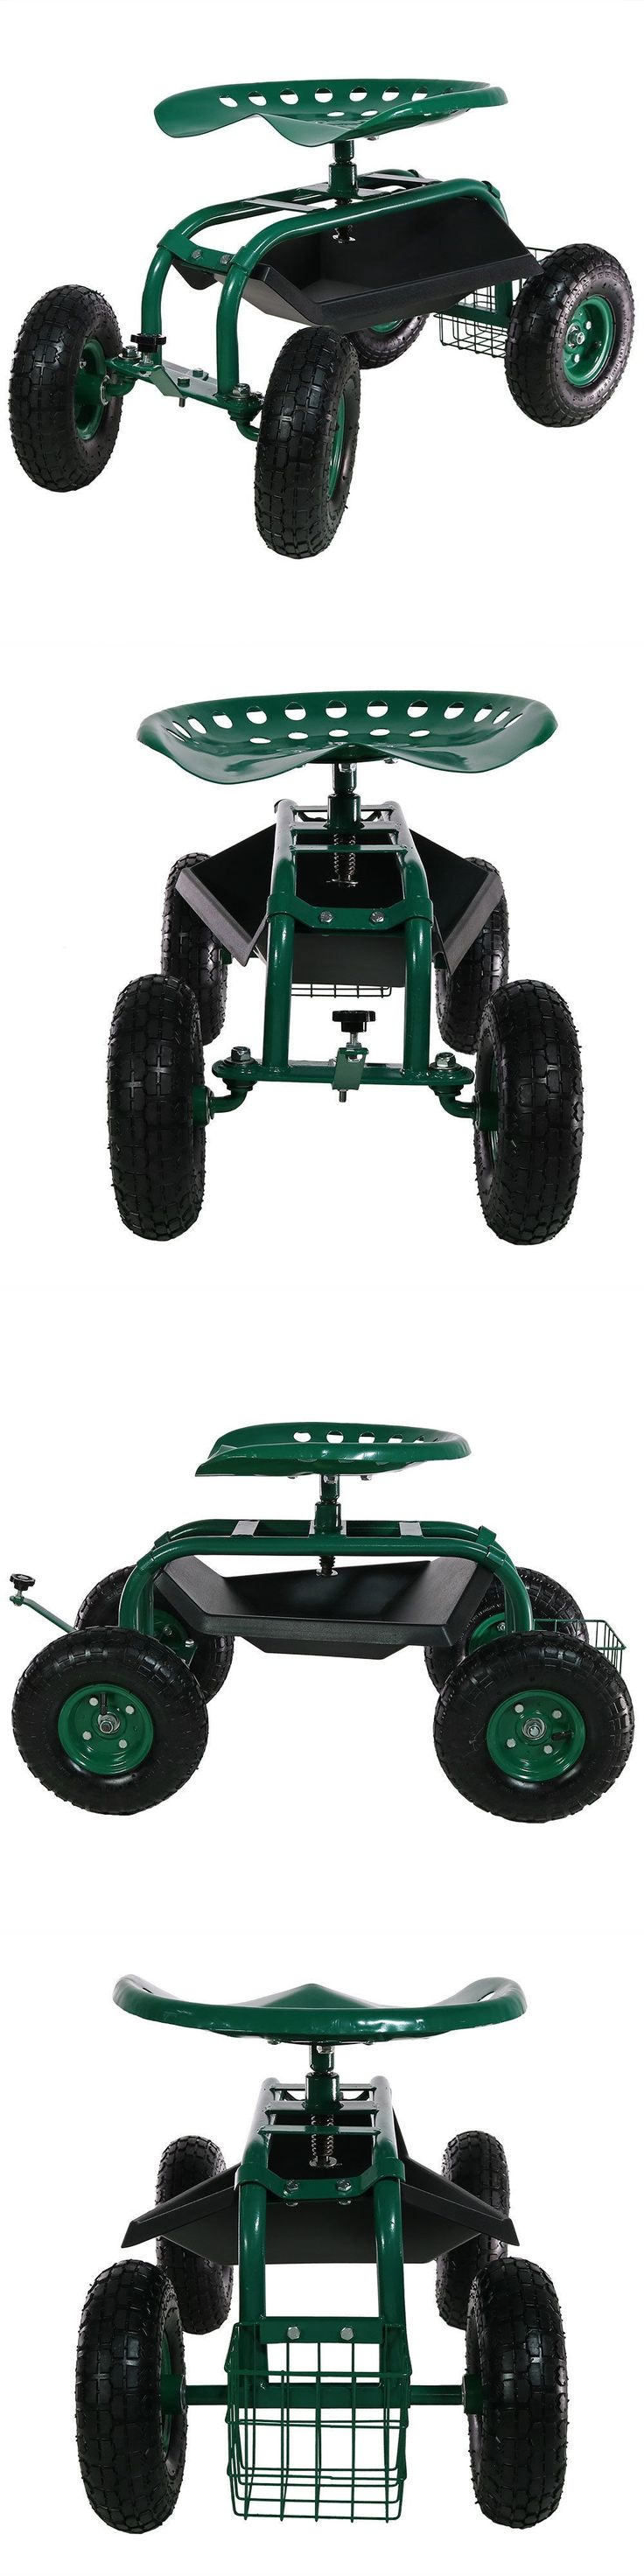 Garden Kneelers Pads and Seats 75669: Garden Stool Tractor Seat Rolling Swivel Gardening Cart Gardener Planting Weeds -> BUY IT NOW ONLY: $99.97 on eBay!